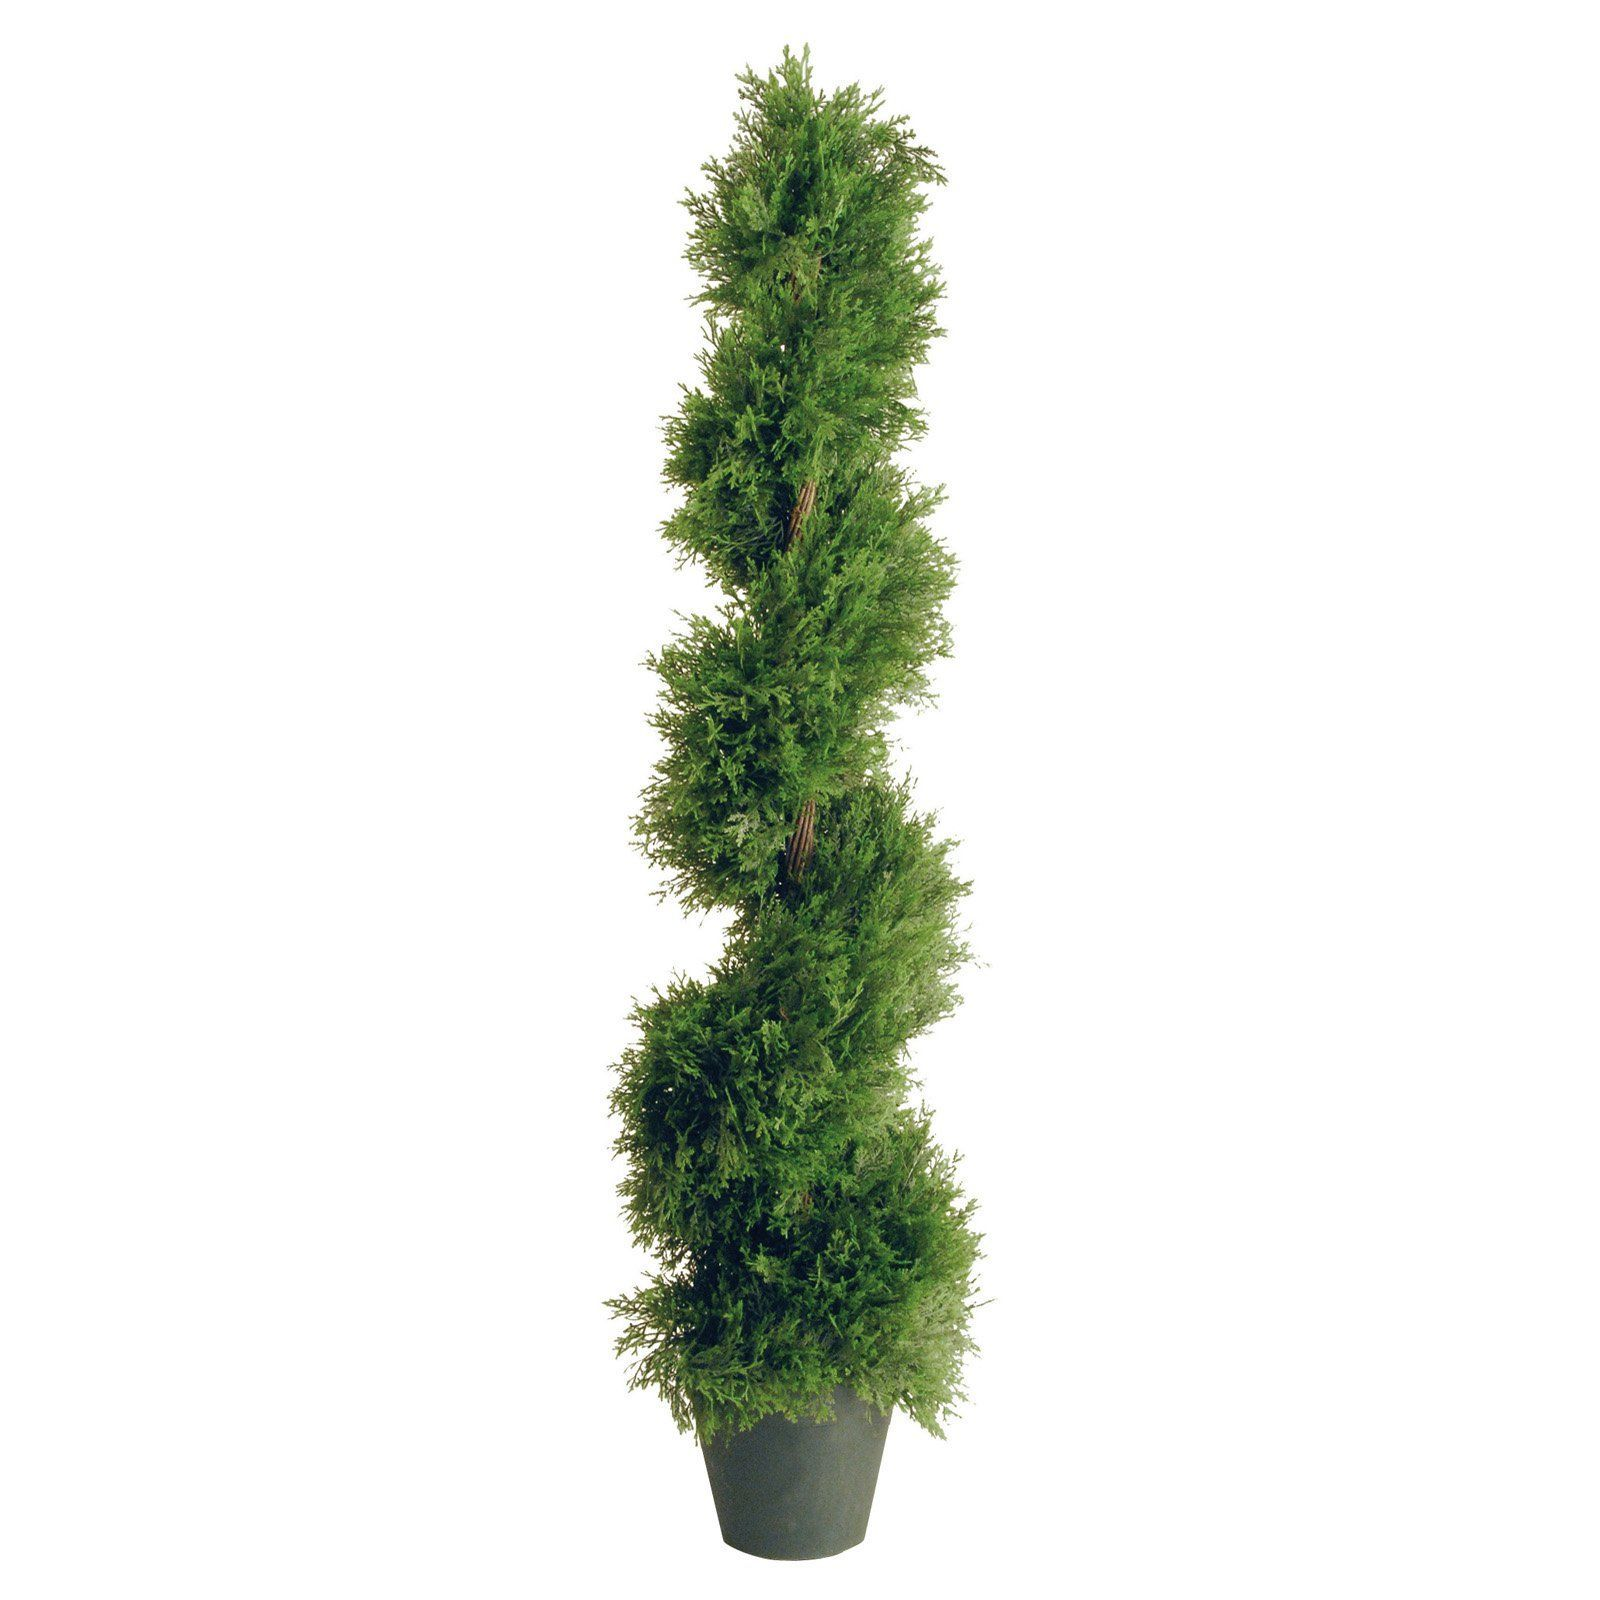 48in. Juniper Slim Spiral with Green Pot (With images